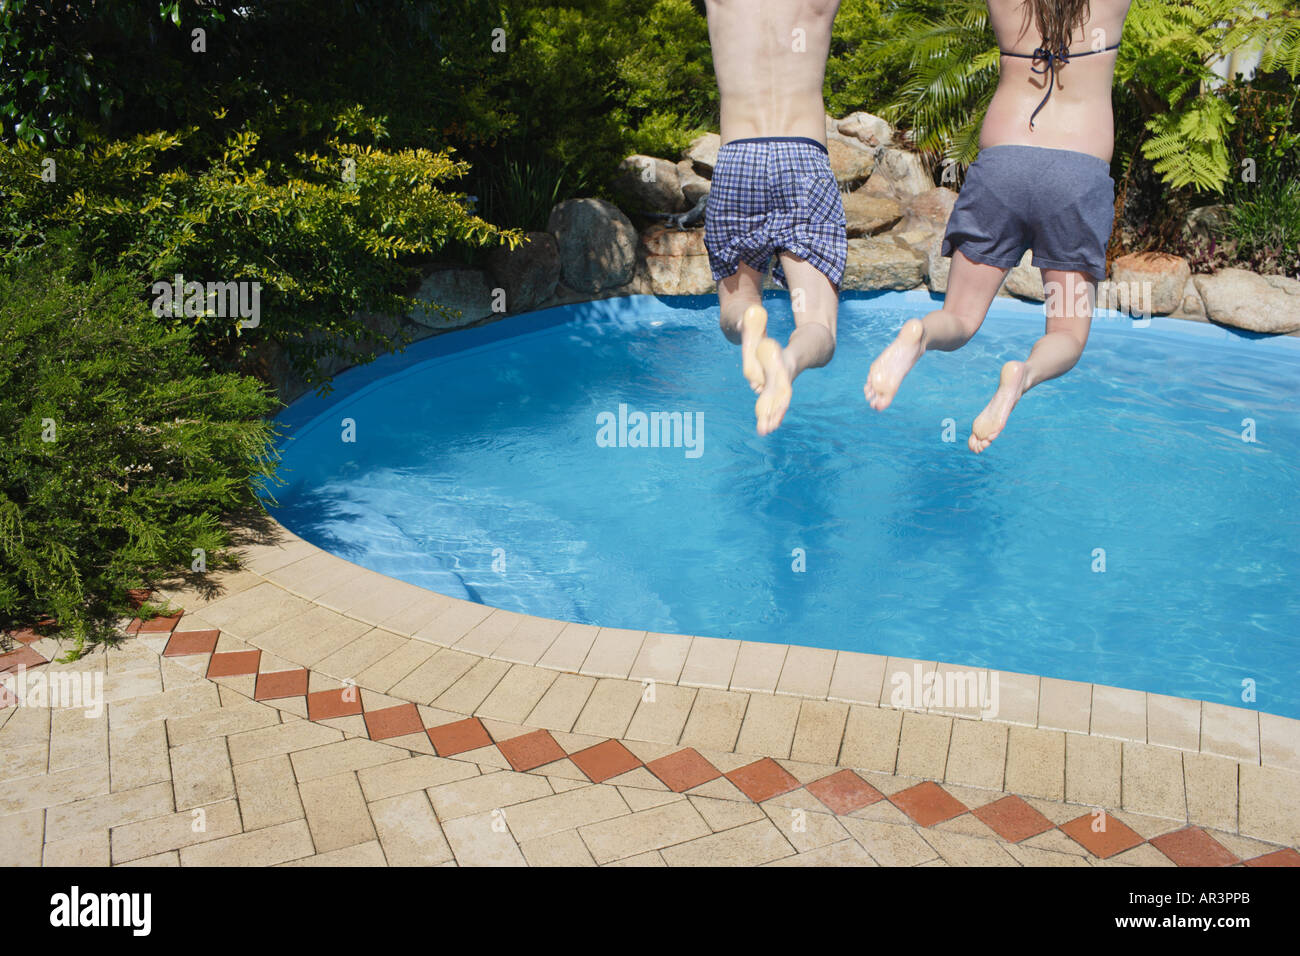 Young couple jumping into outdoor swimming pool - Stock Image